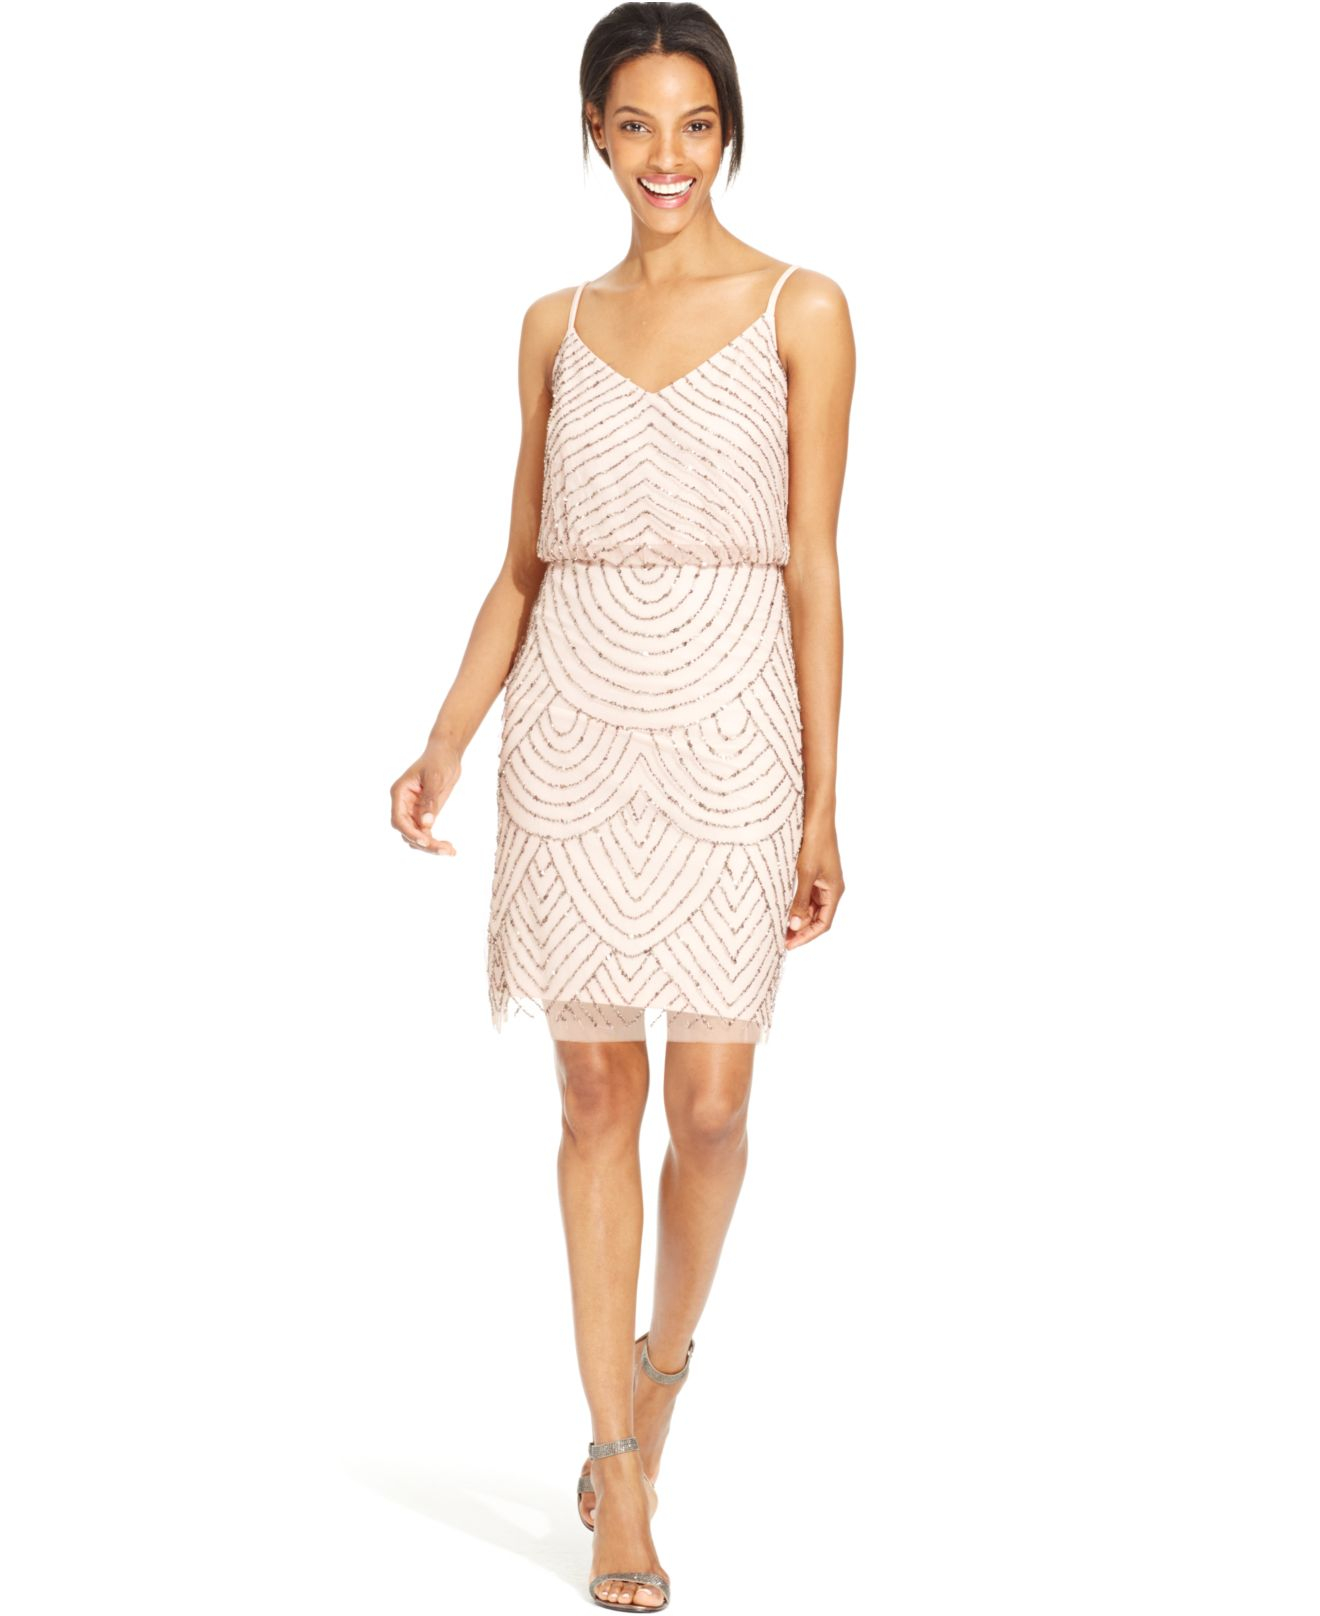 49dad12d79 Lyst - Adrianna Papell Beaded Blouson Dress in Pink